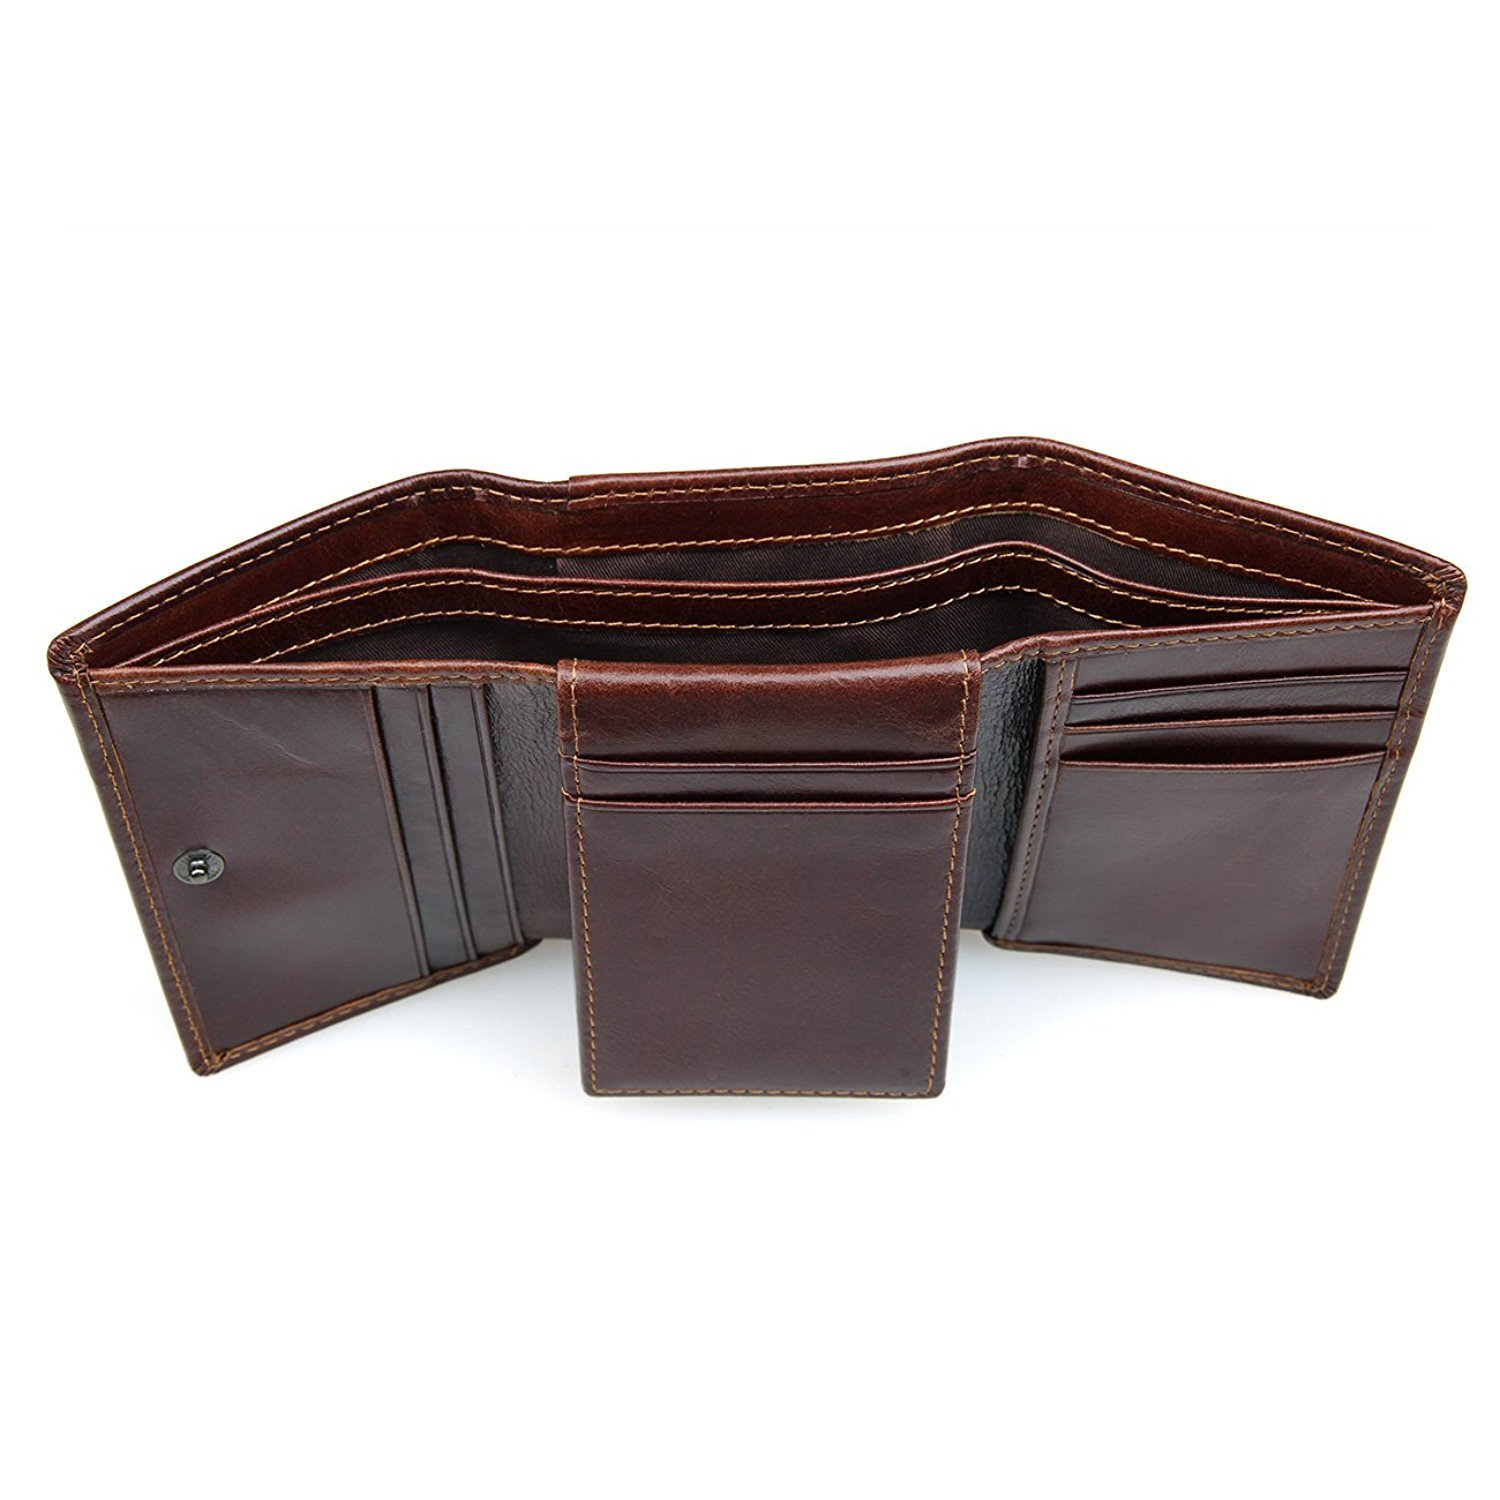 Reinhar Mens Leather Trifold Wallet with Back Pocket